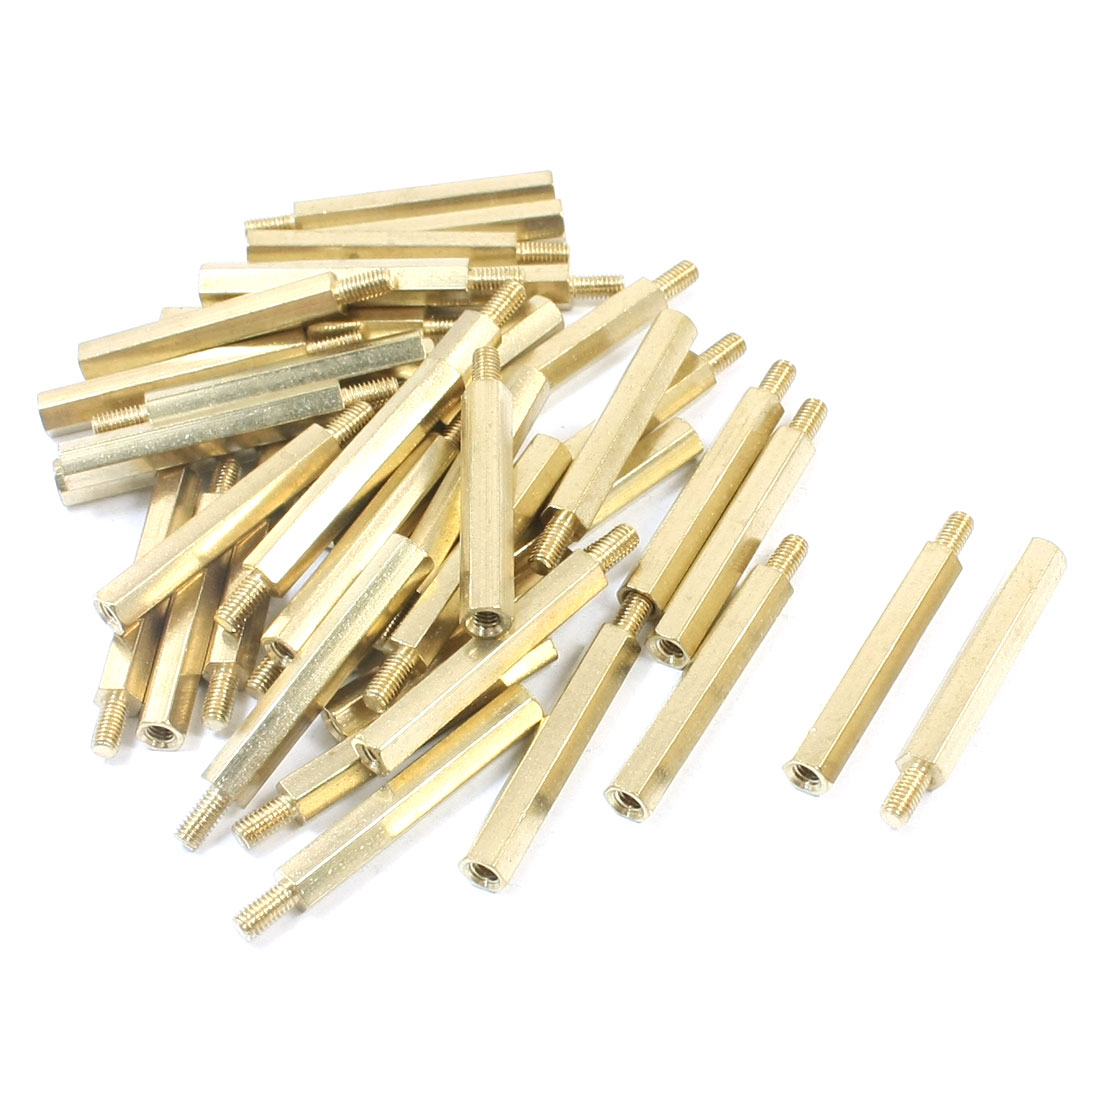 M3 x 30mm x 36mm Male to Female Threaded Gold Tone Brass Pillar PCB Hexagon Nut Standoff Spacer 40Pcs